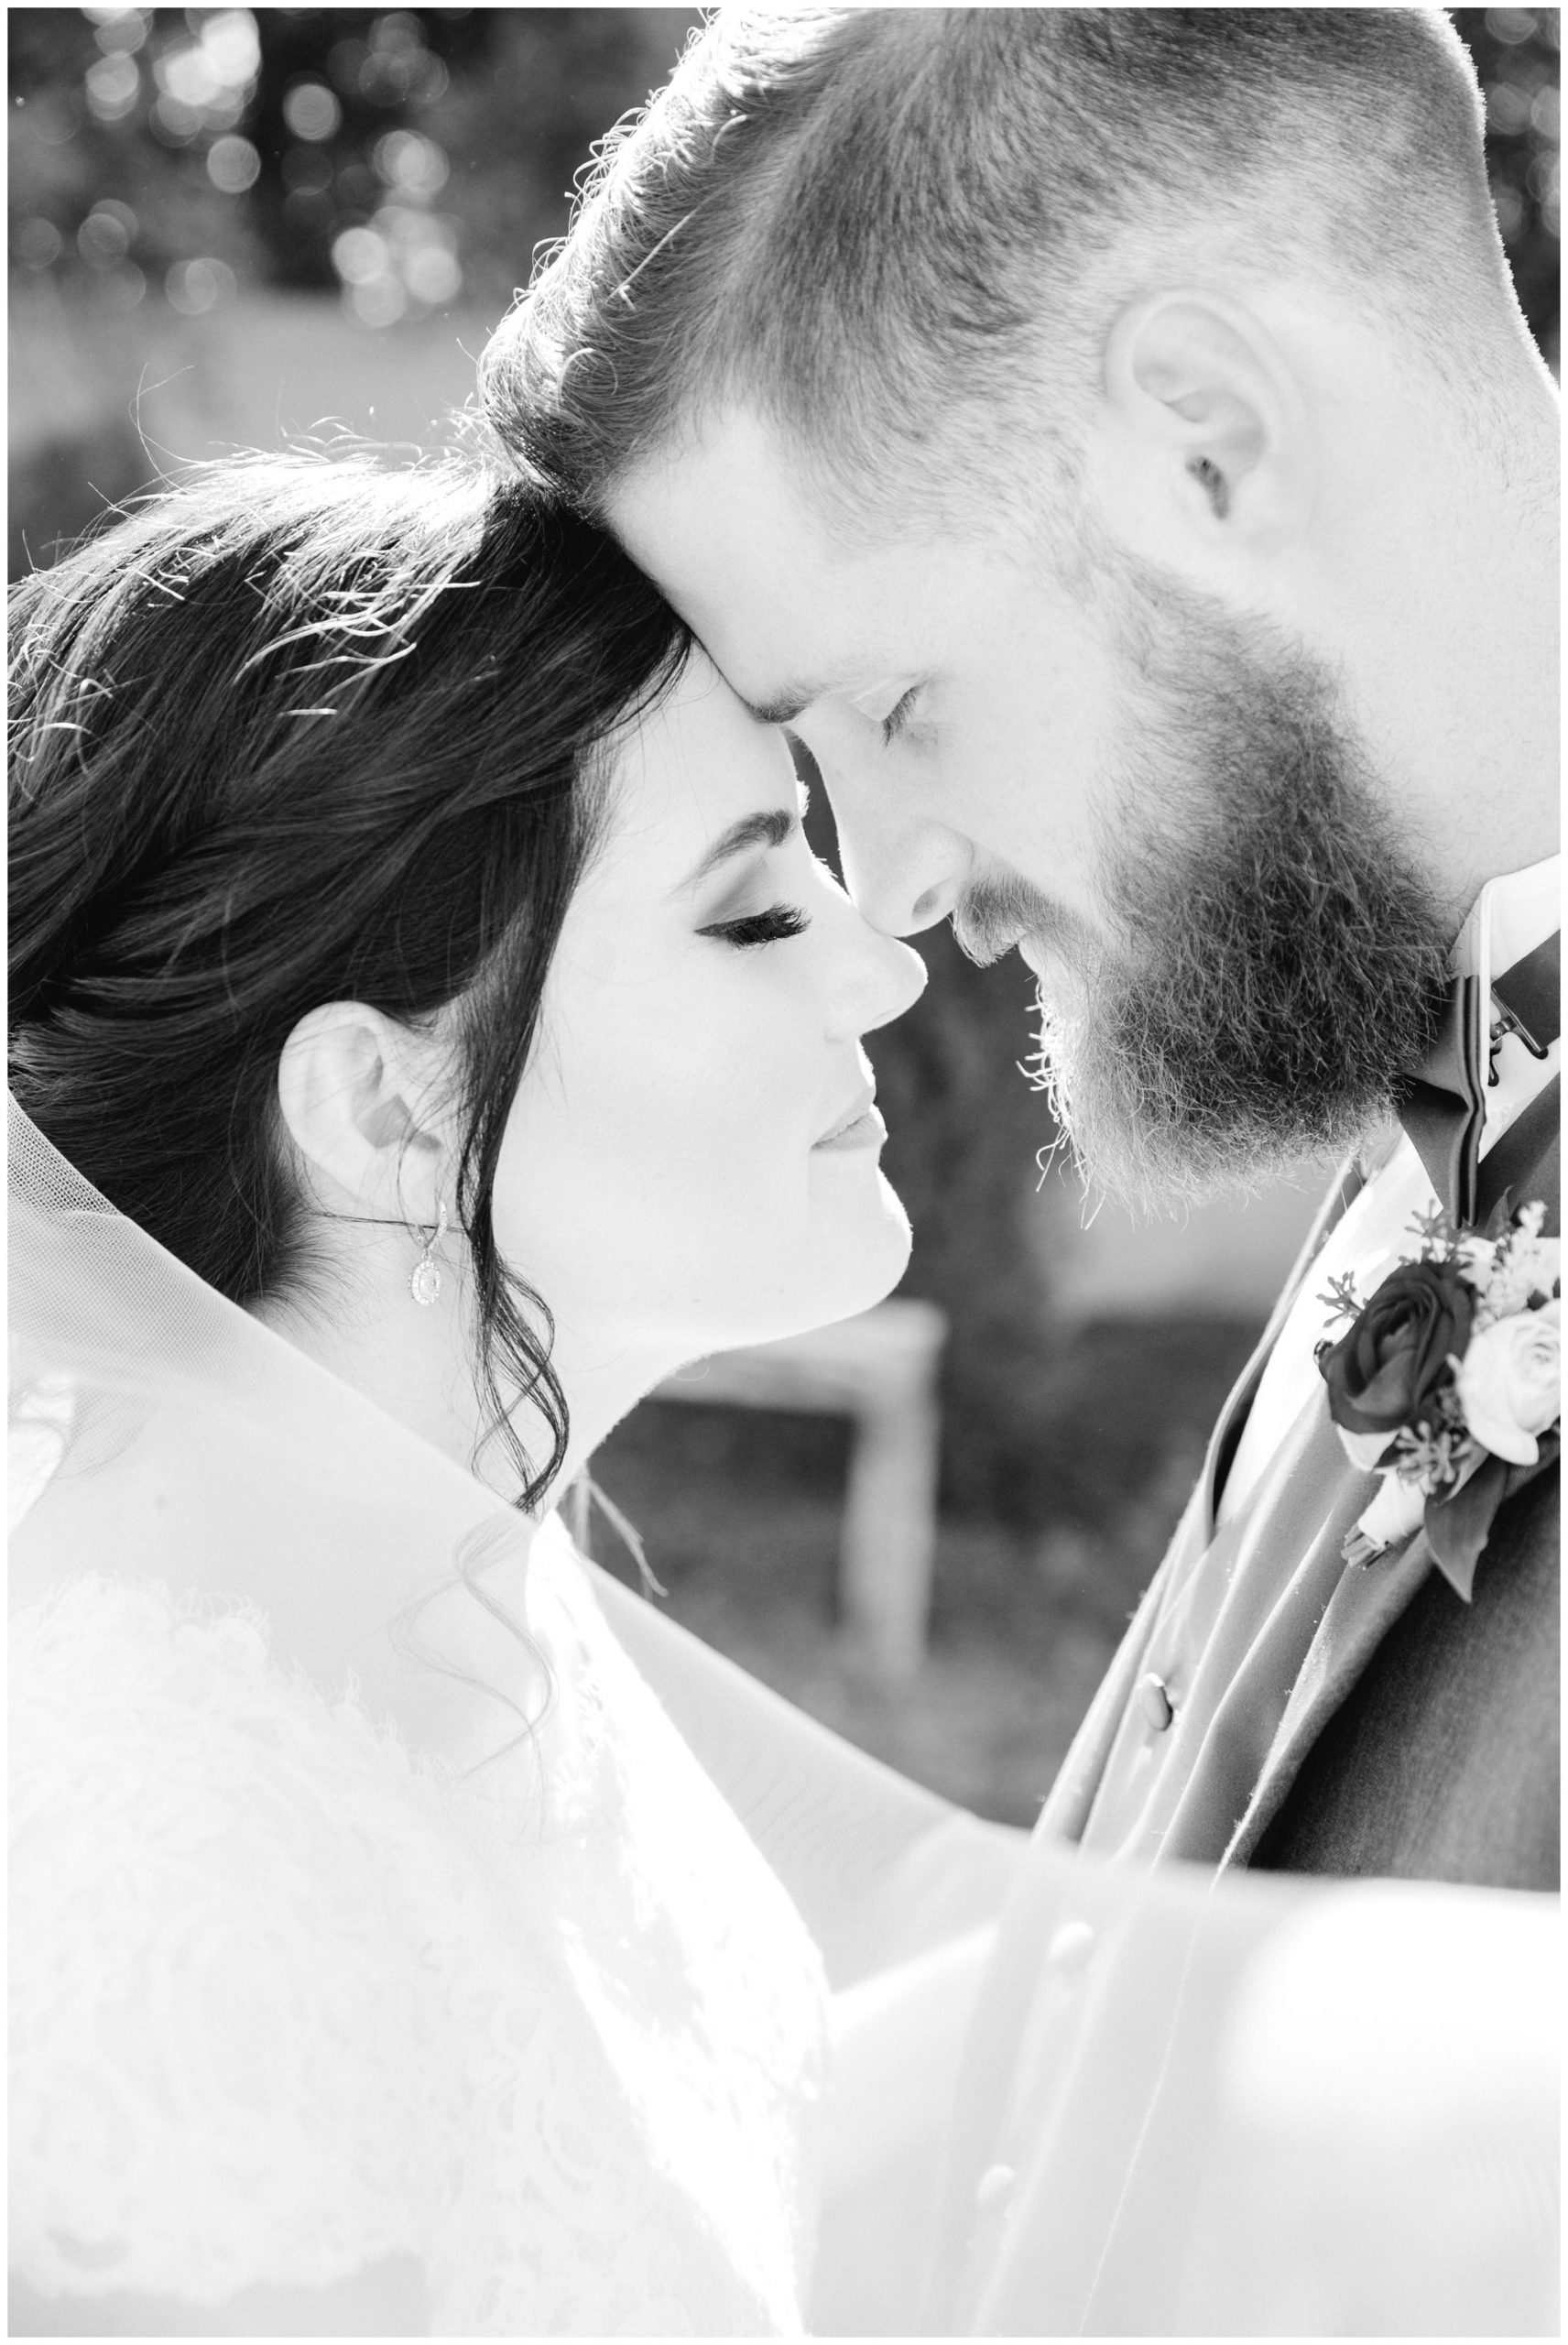 Black and white image of bride and groom snuggling close together at their wedding about to kiss.